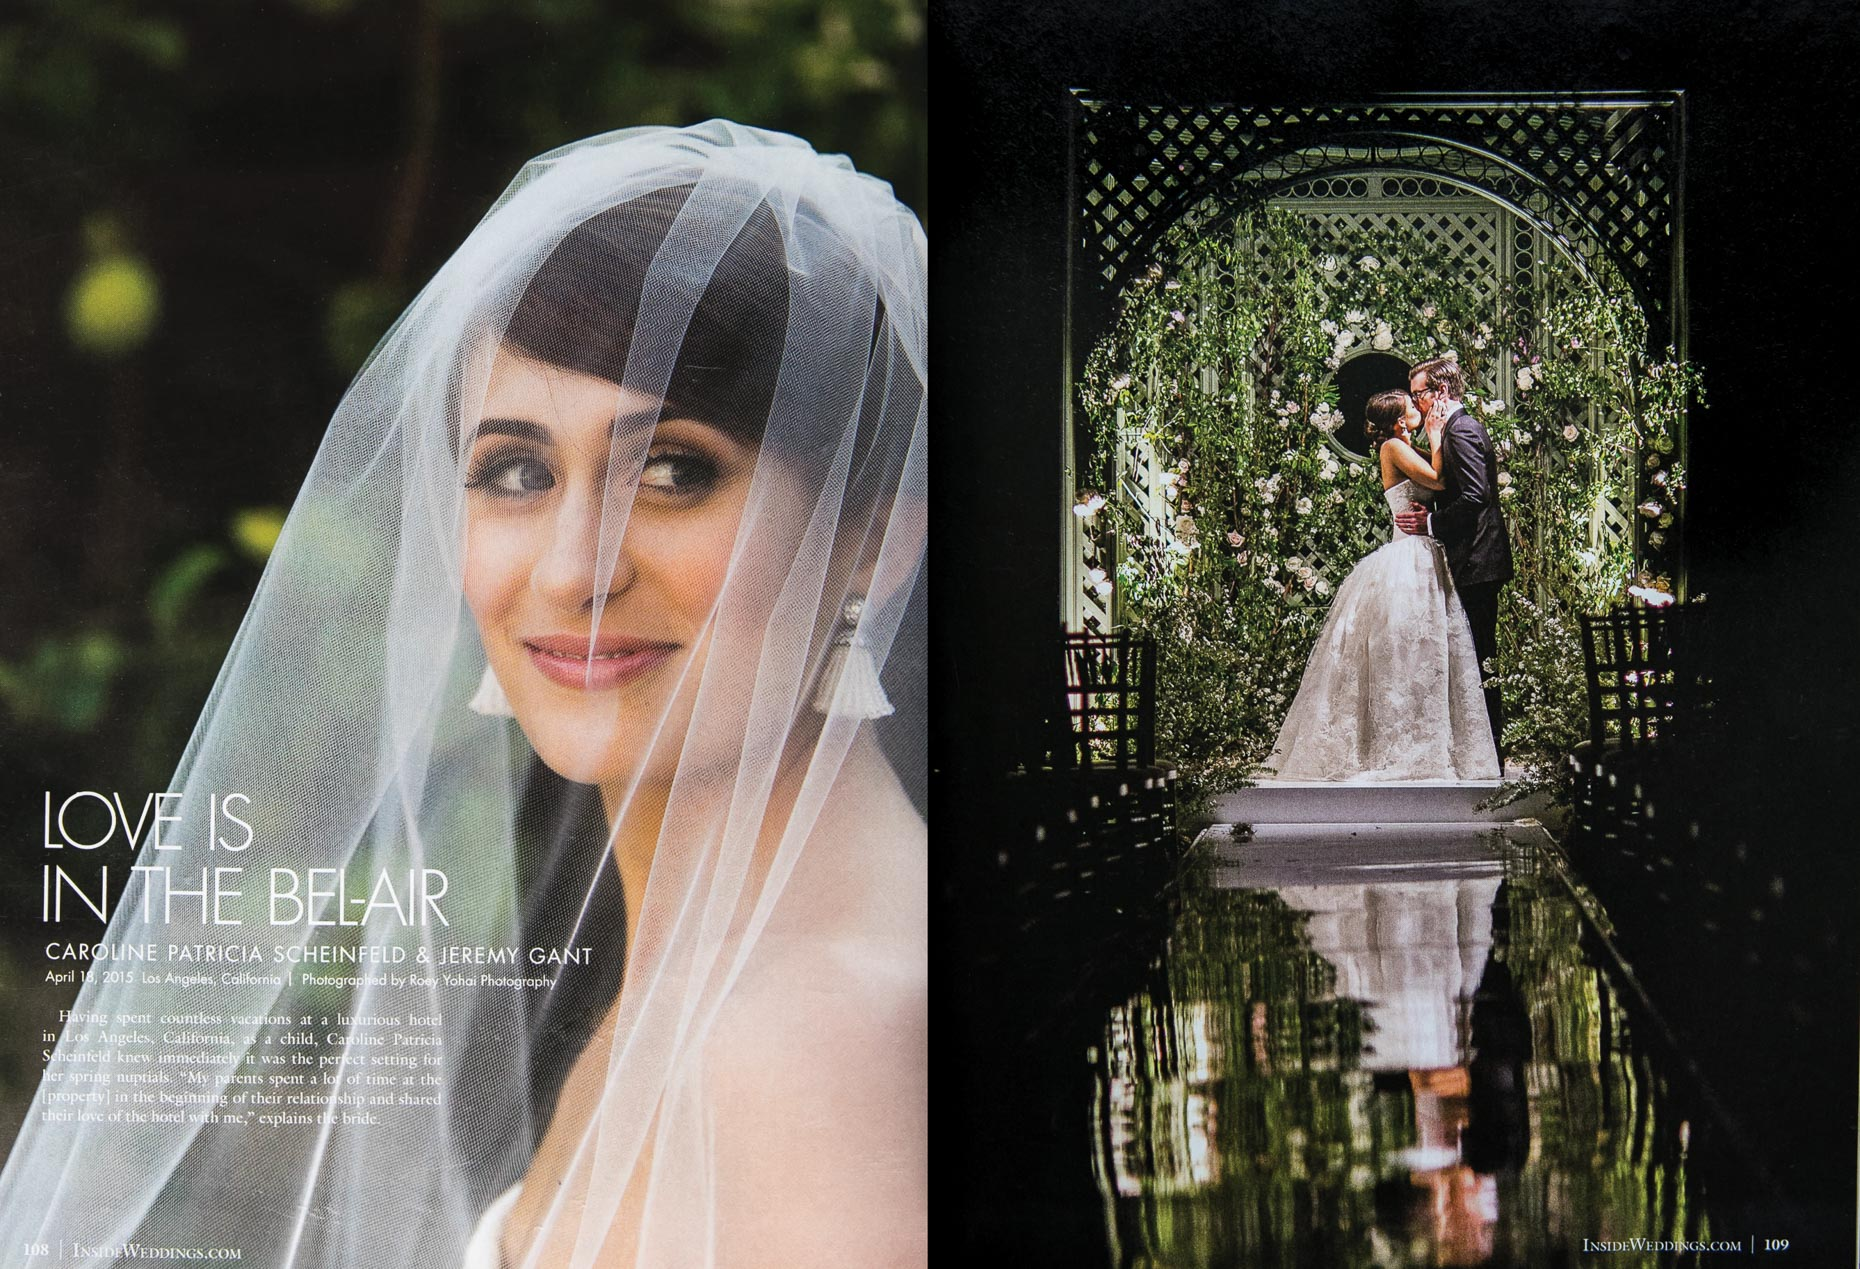 012_insideweddings_spread1_spring2016